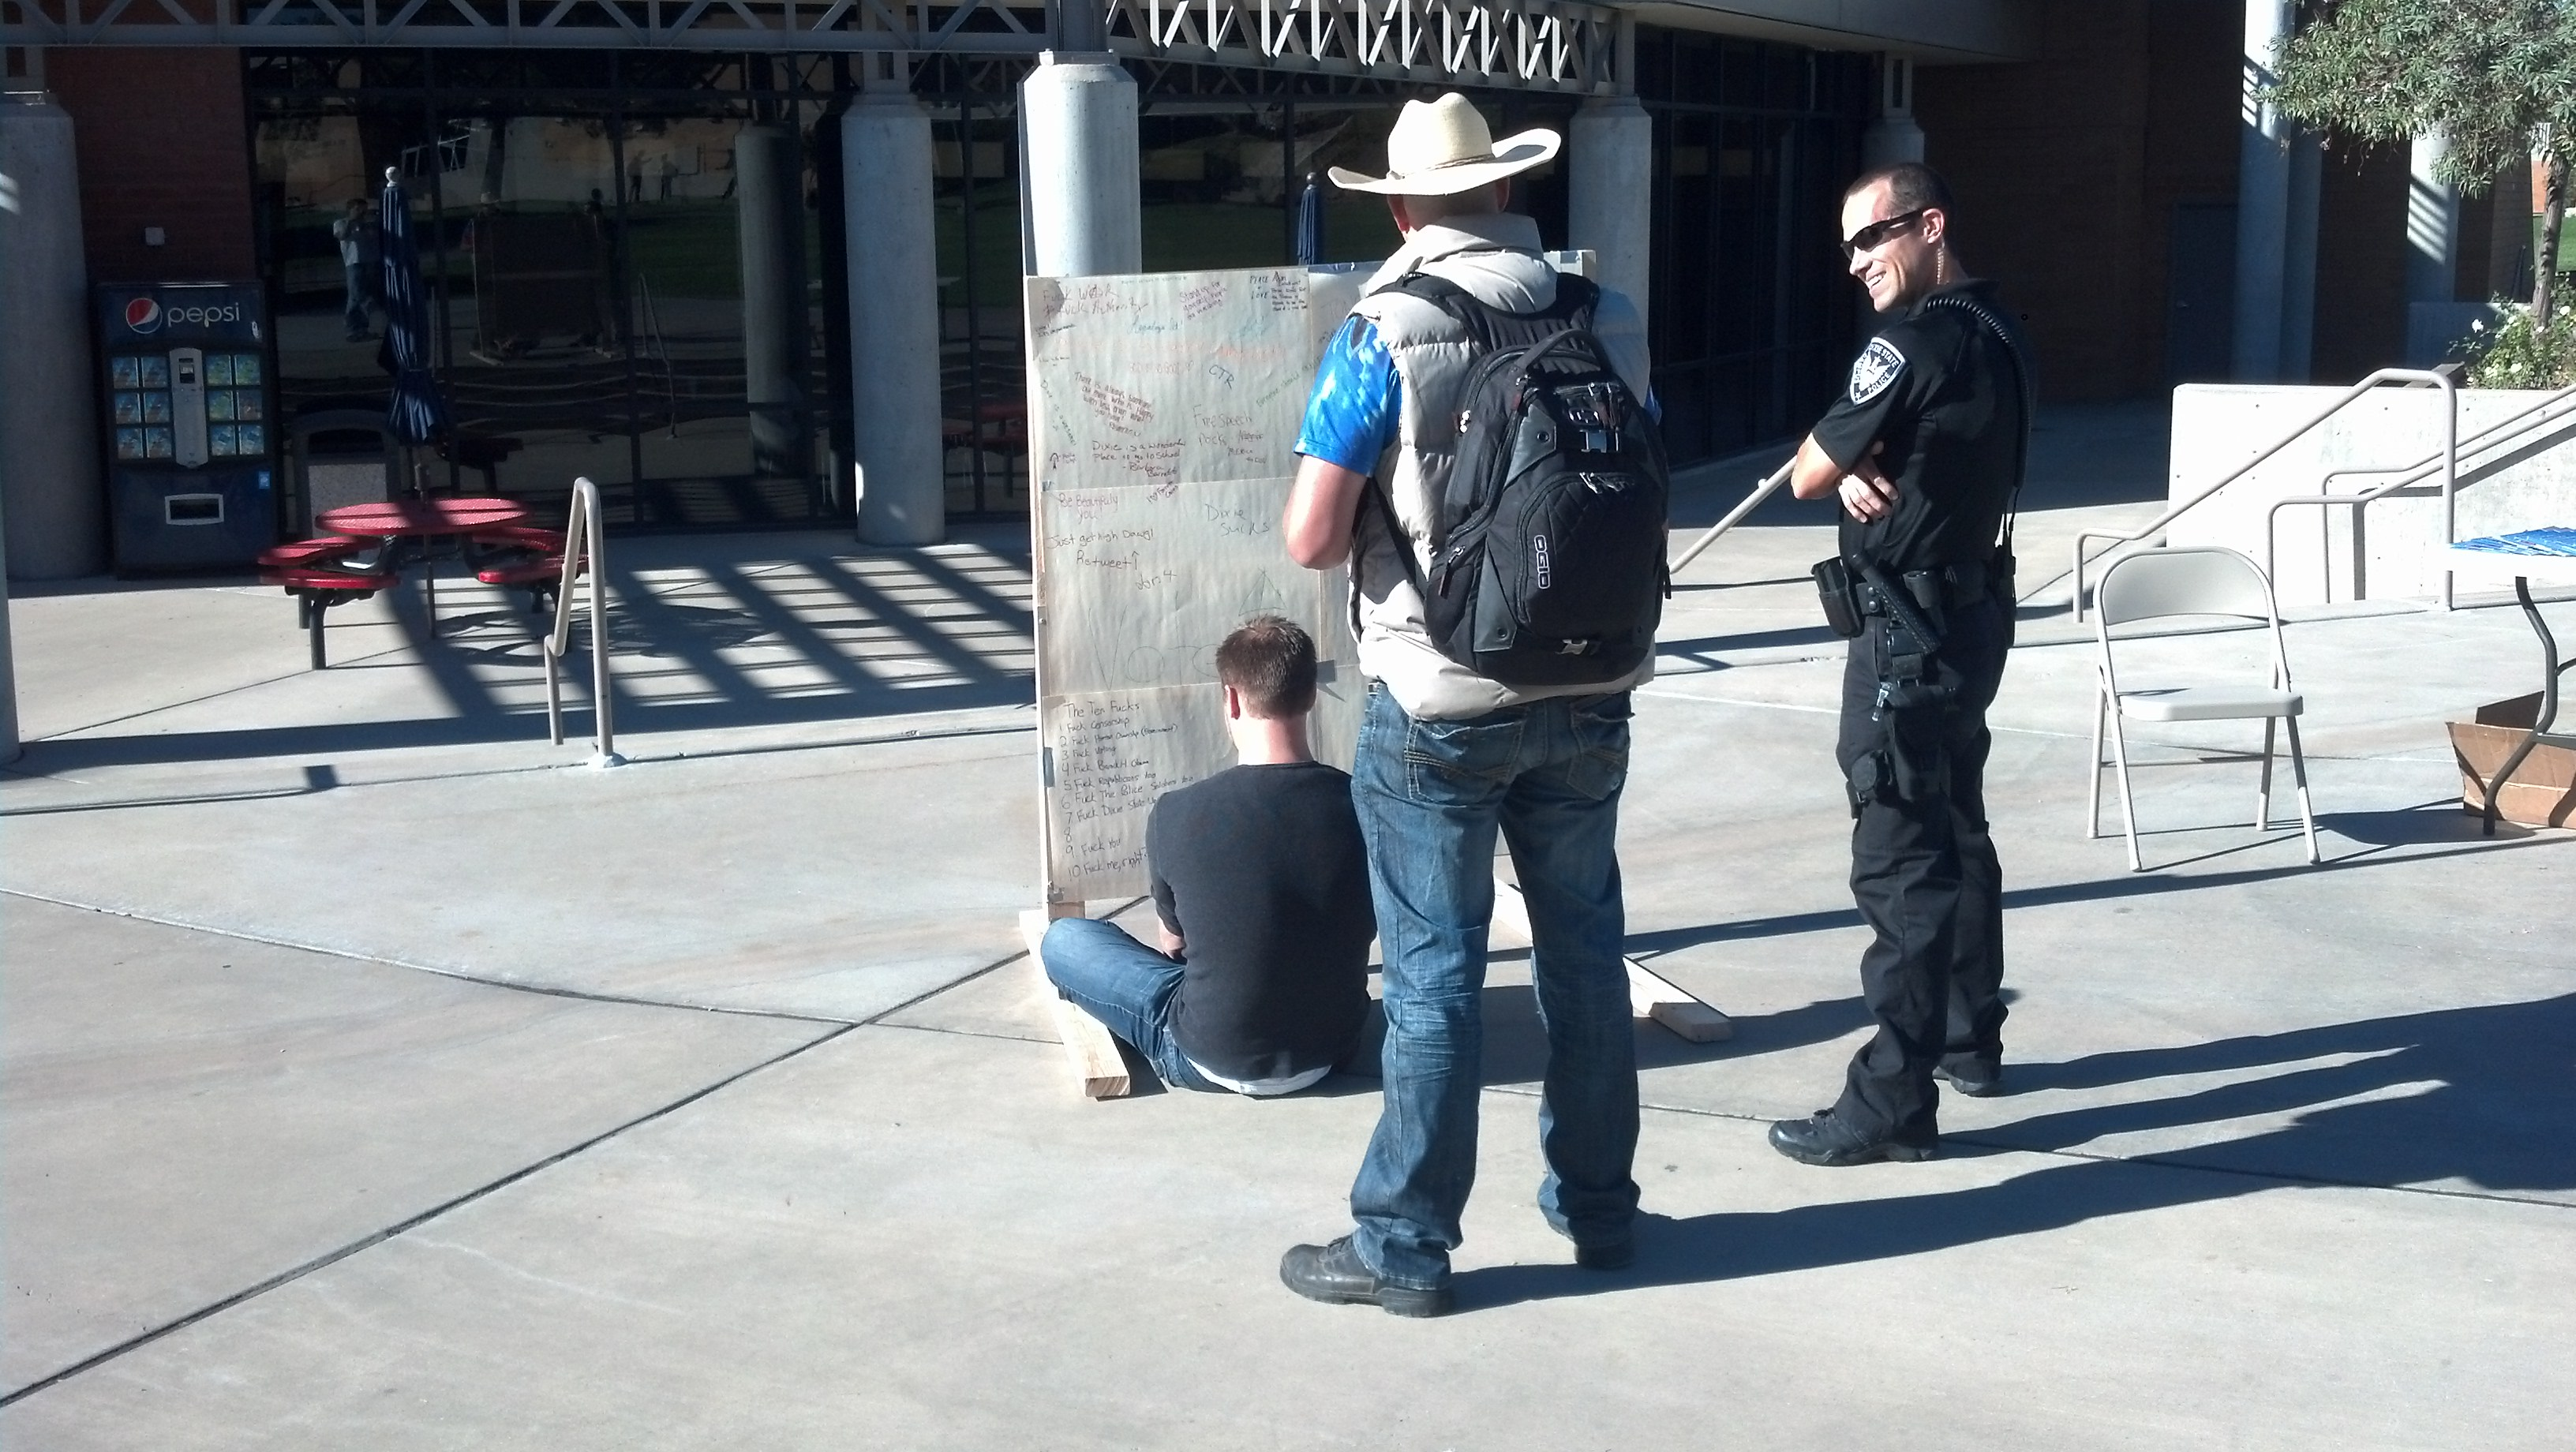 Officer at Dixie State University Free Speech Wall